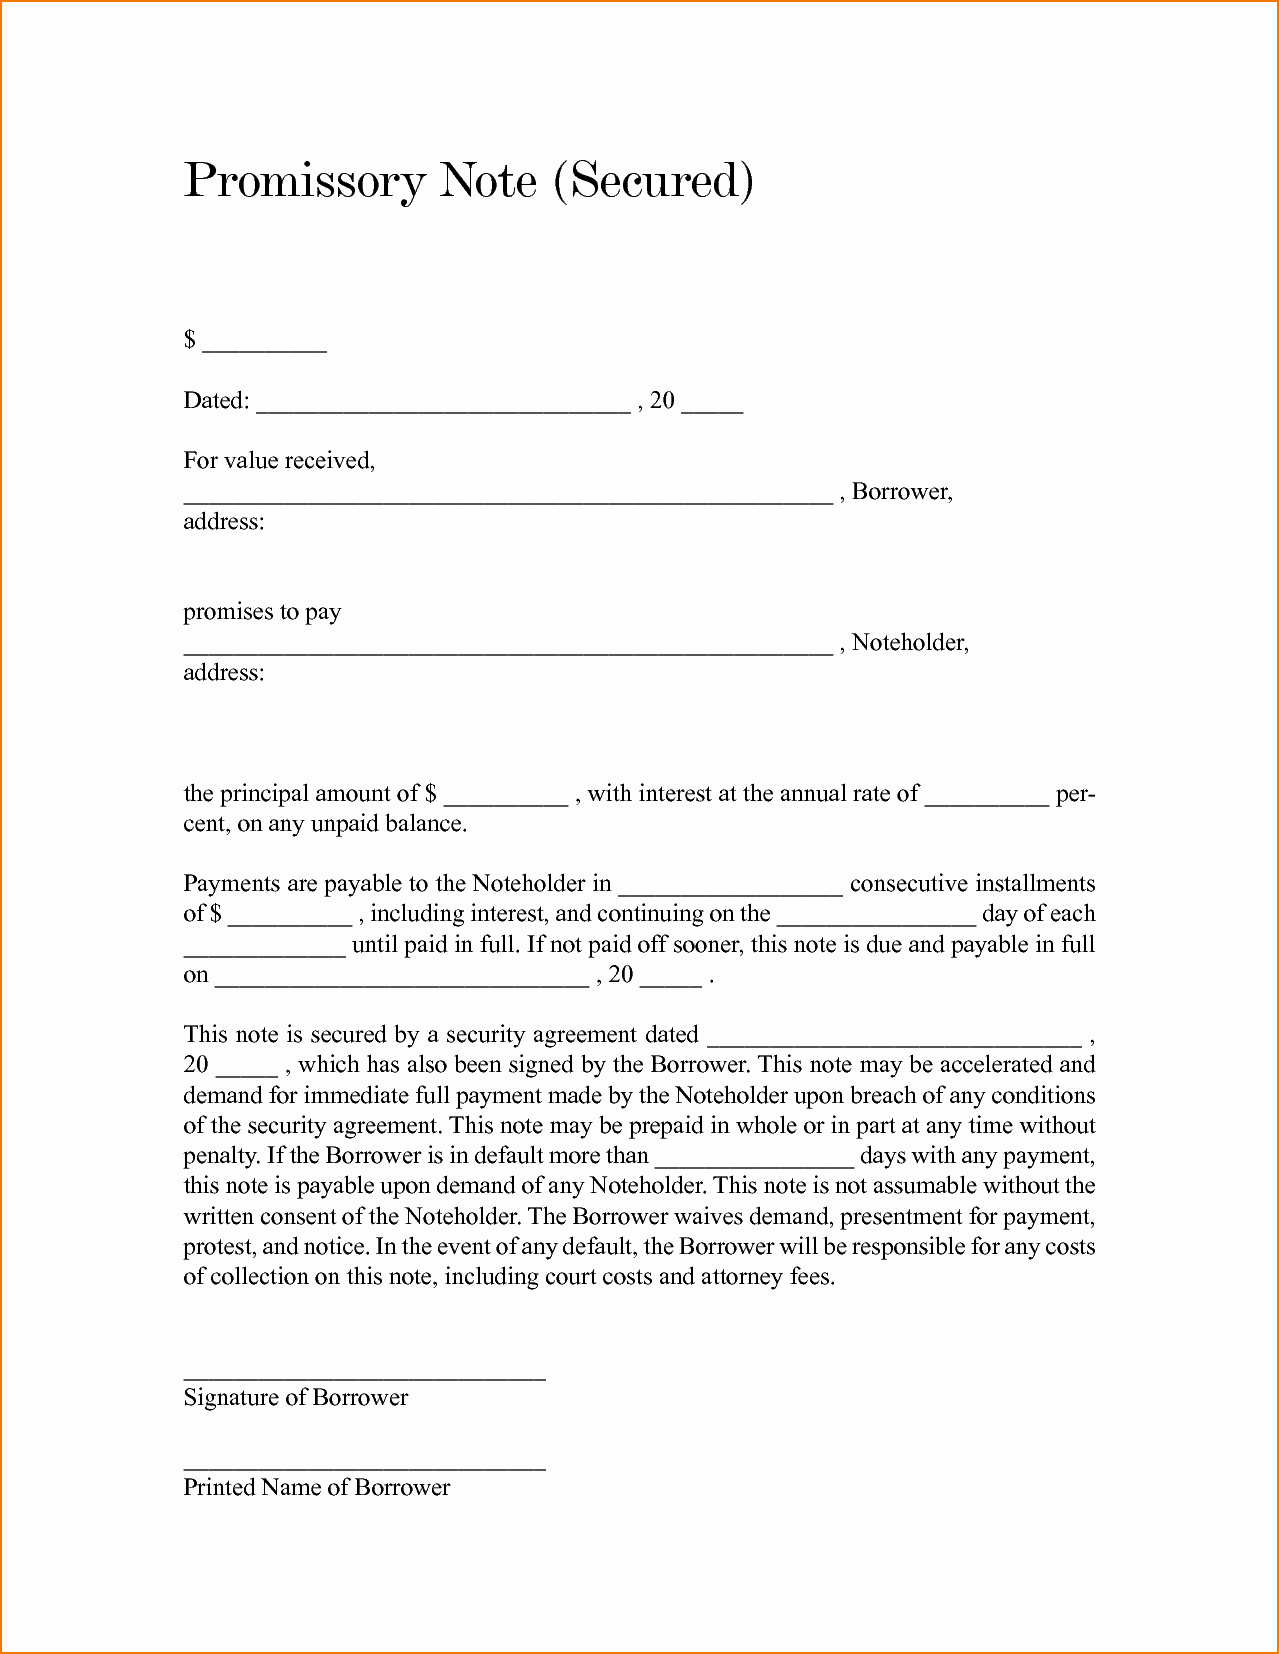 Promissory Note Template Texas Fresh 4 Secured Promissory Note Template